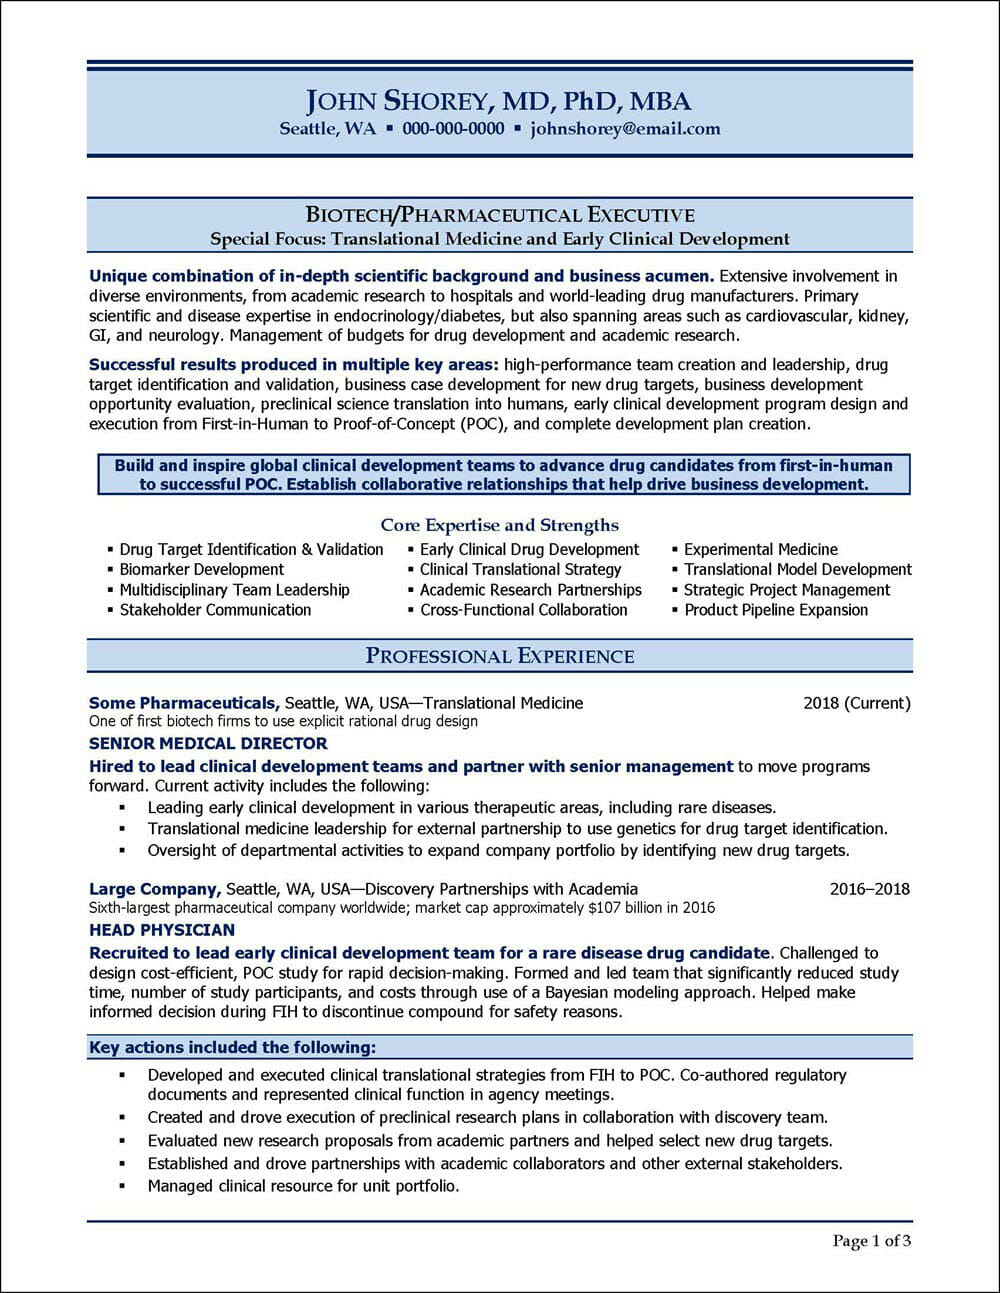 Biotech and Pharmaceutical Executive Resume Page 1